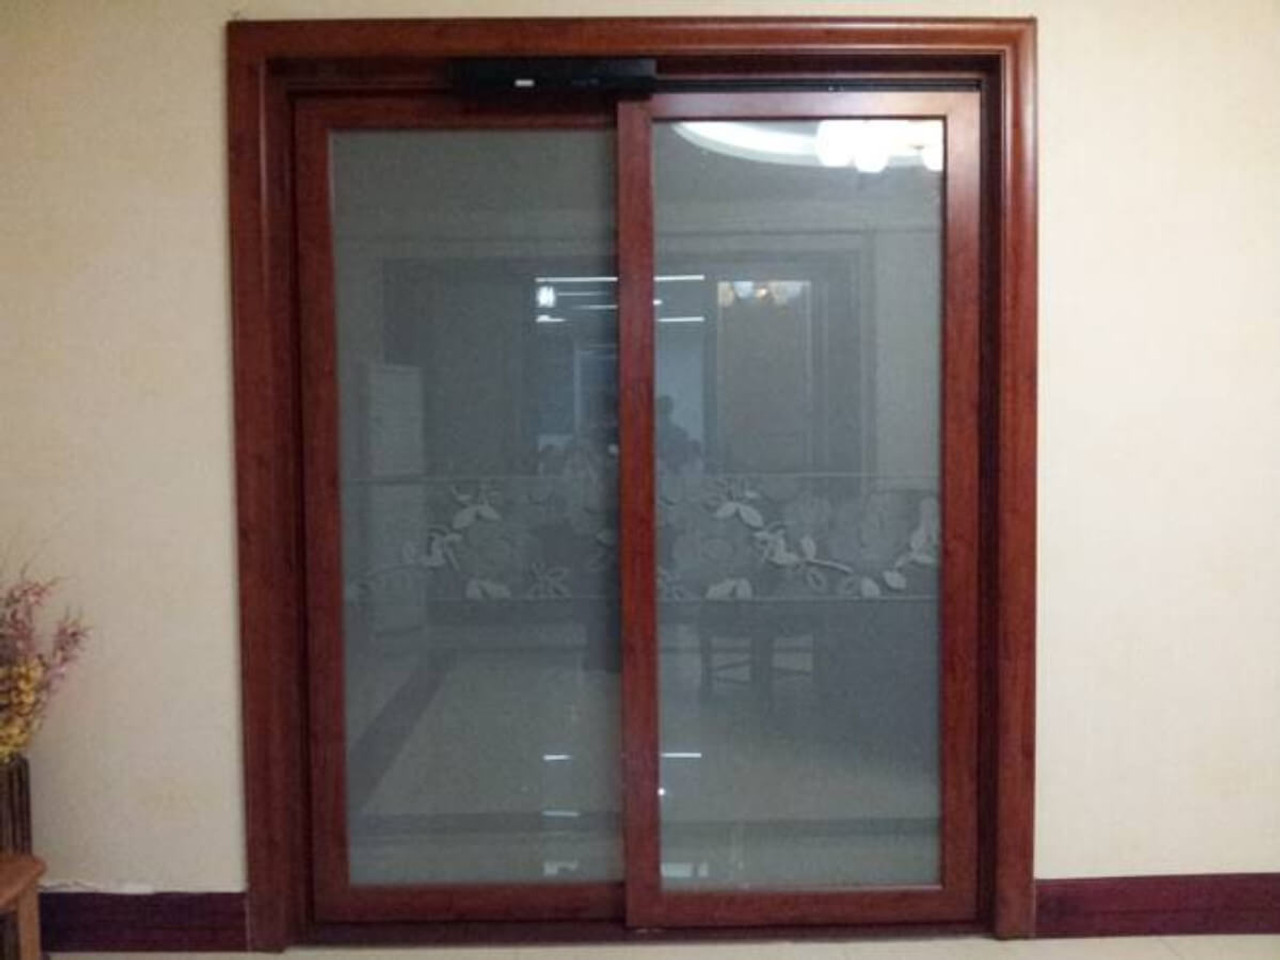 Autoslide electronic sliding glass door openers can be installed on almost any sliding door